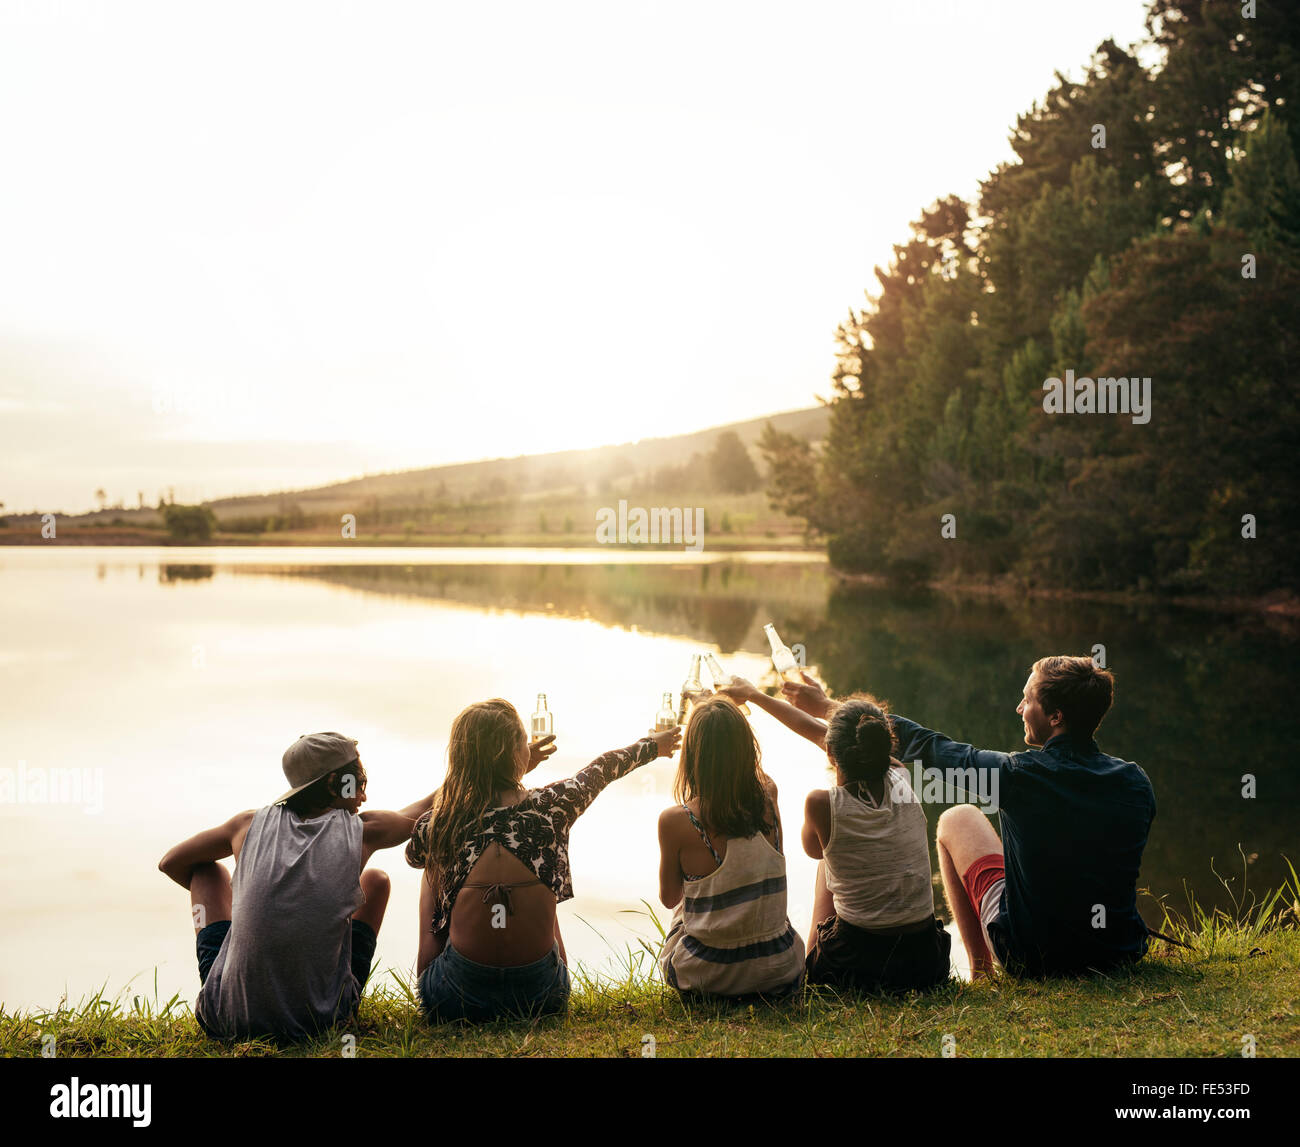 Group of young people sitting in a row at a lake. Young friends toasting and celebrating with beers at the lake. - Stock Image